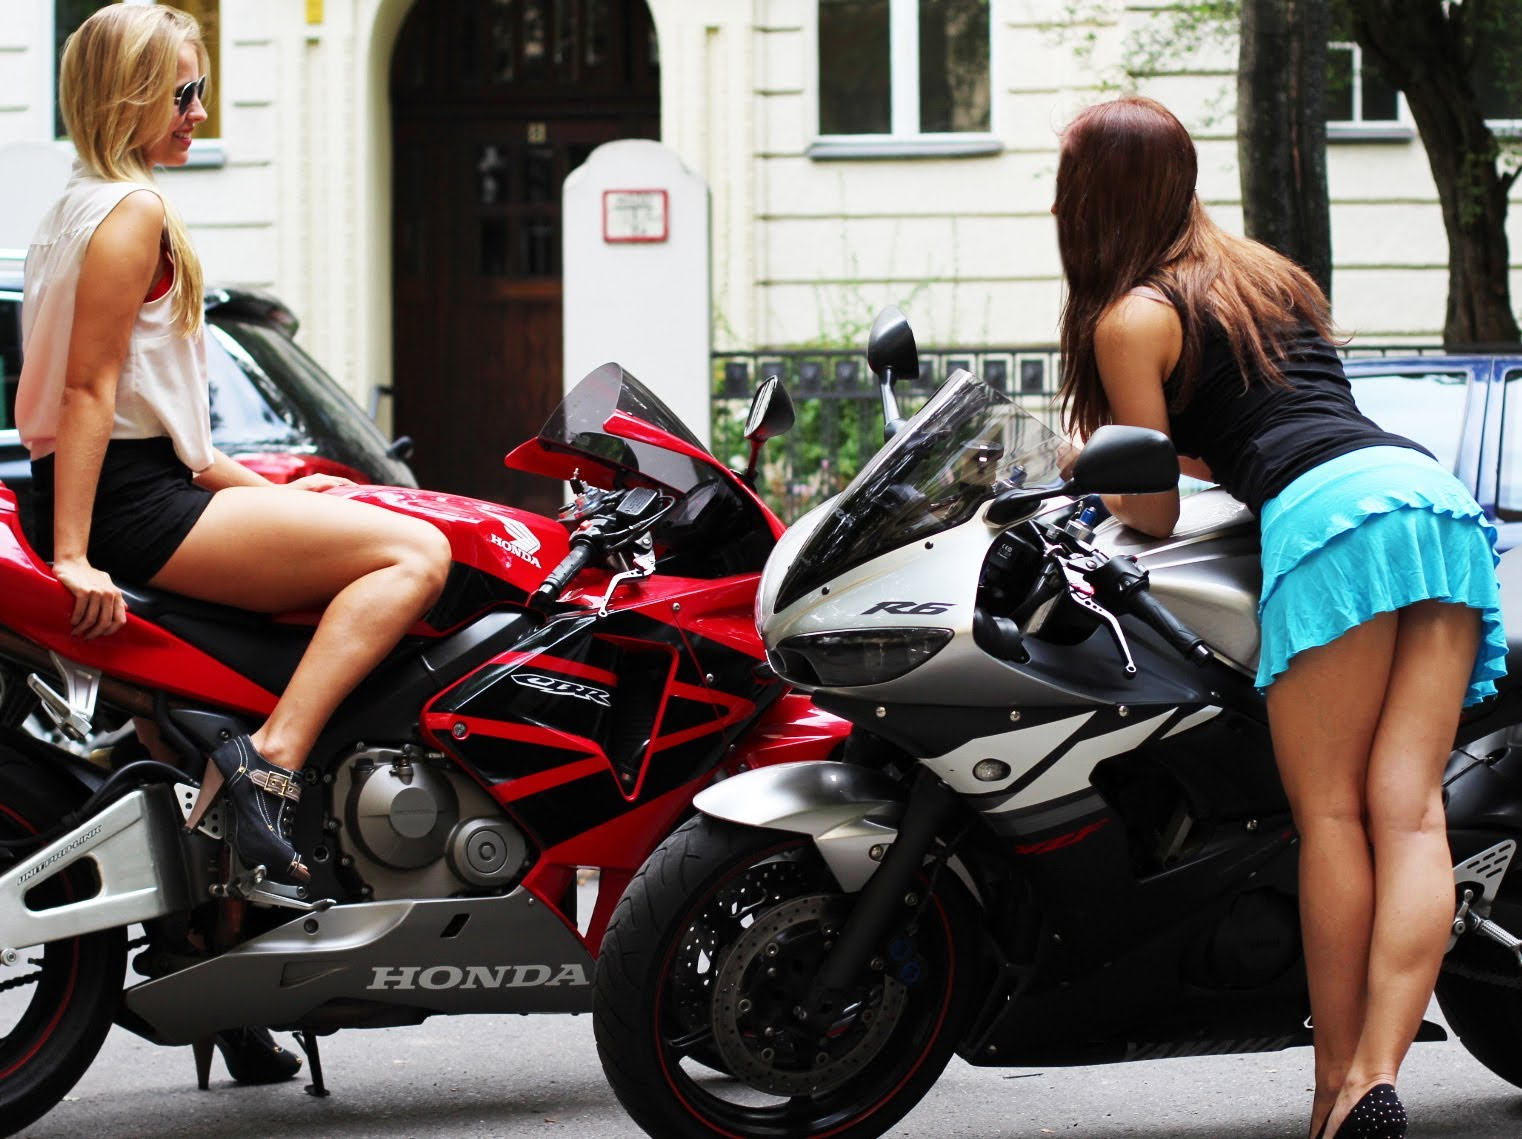 Girls Gone Wild: R6 VS ZX-6R VS CBR 600 RR Roll Racing